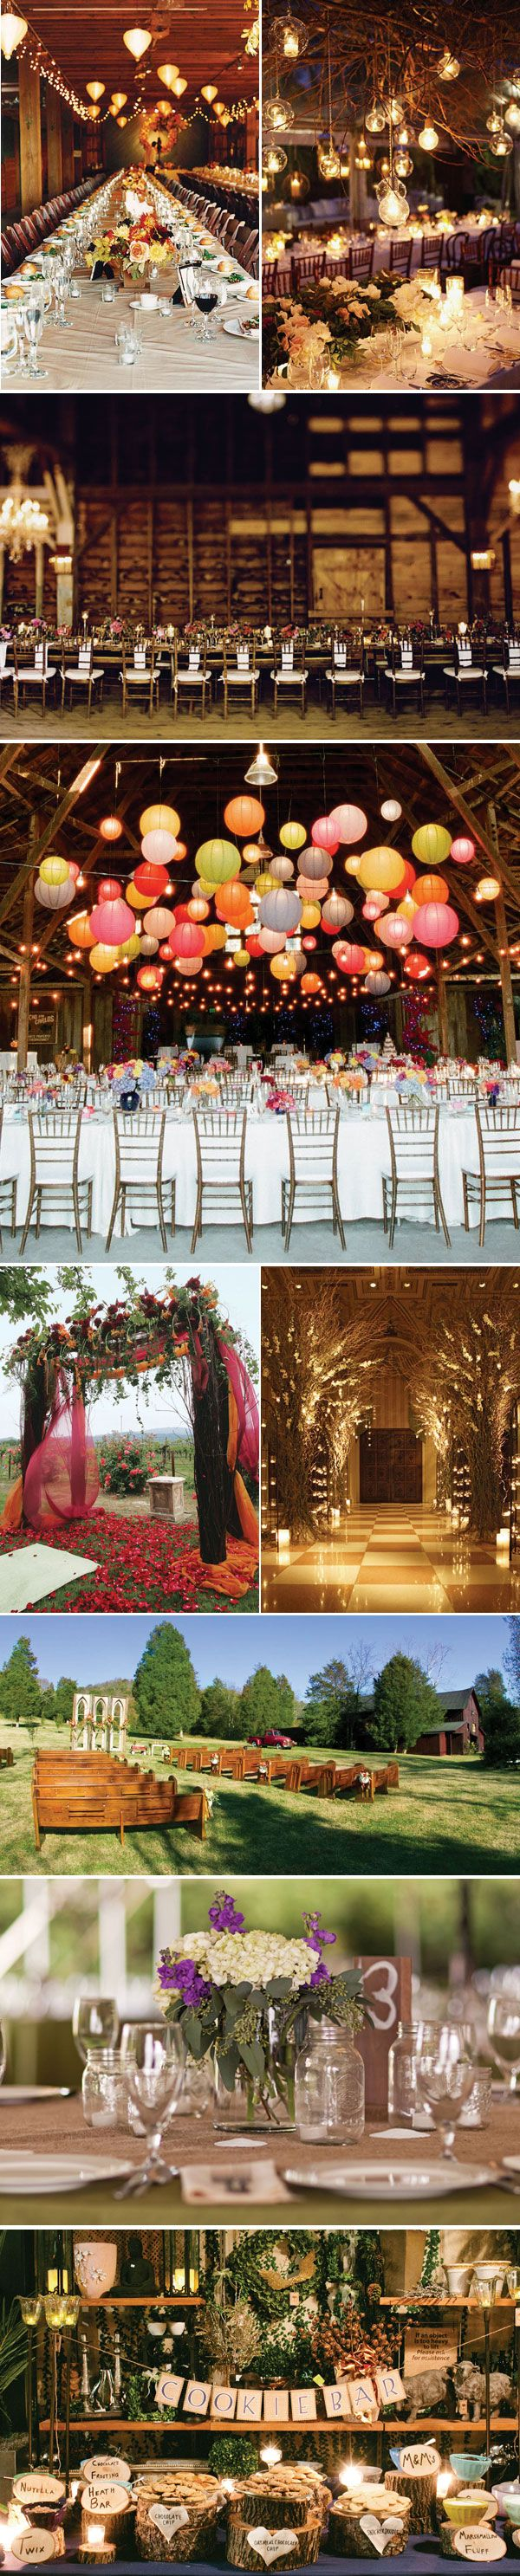 rustic wedding decor inspiration